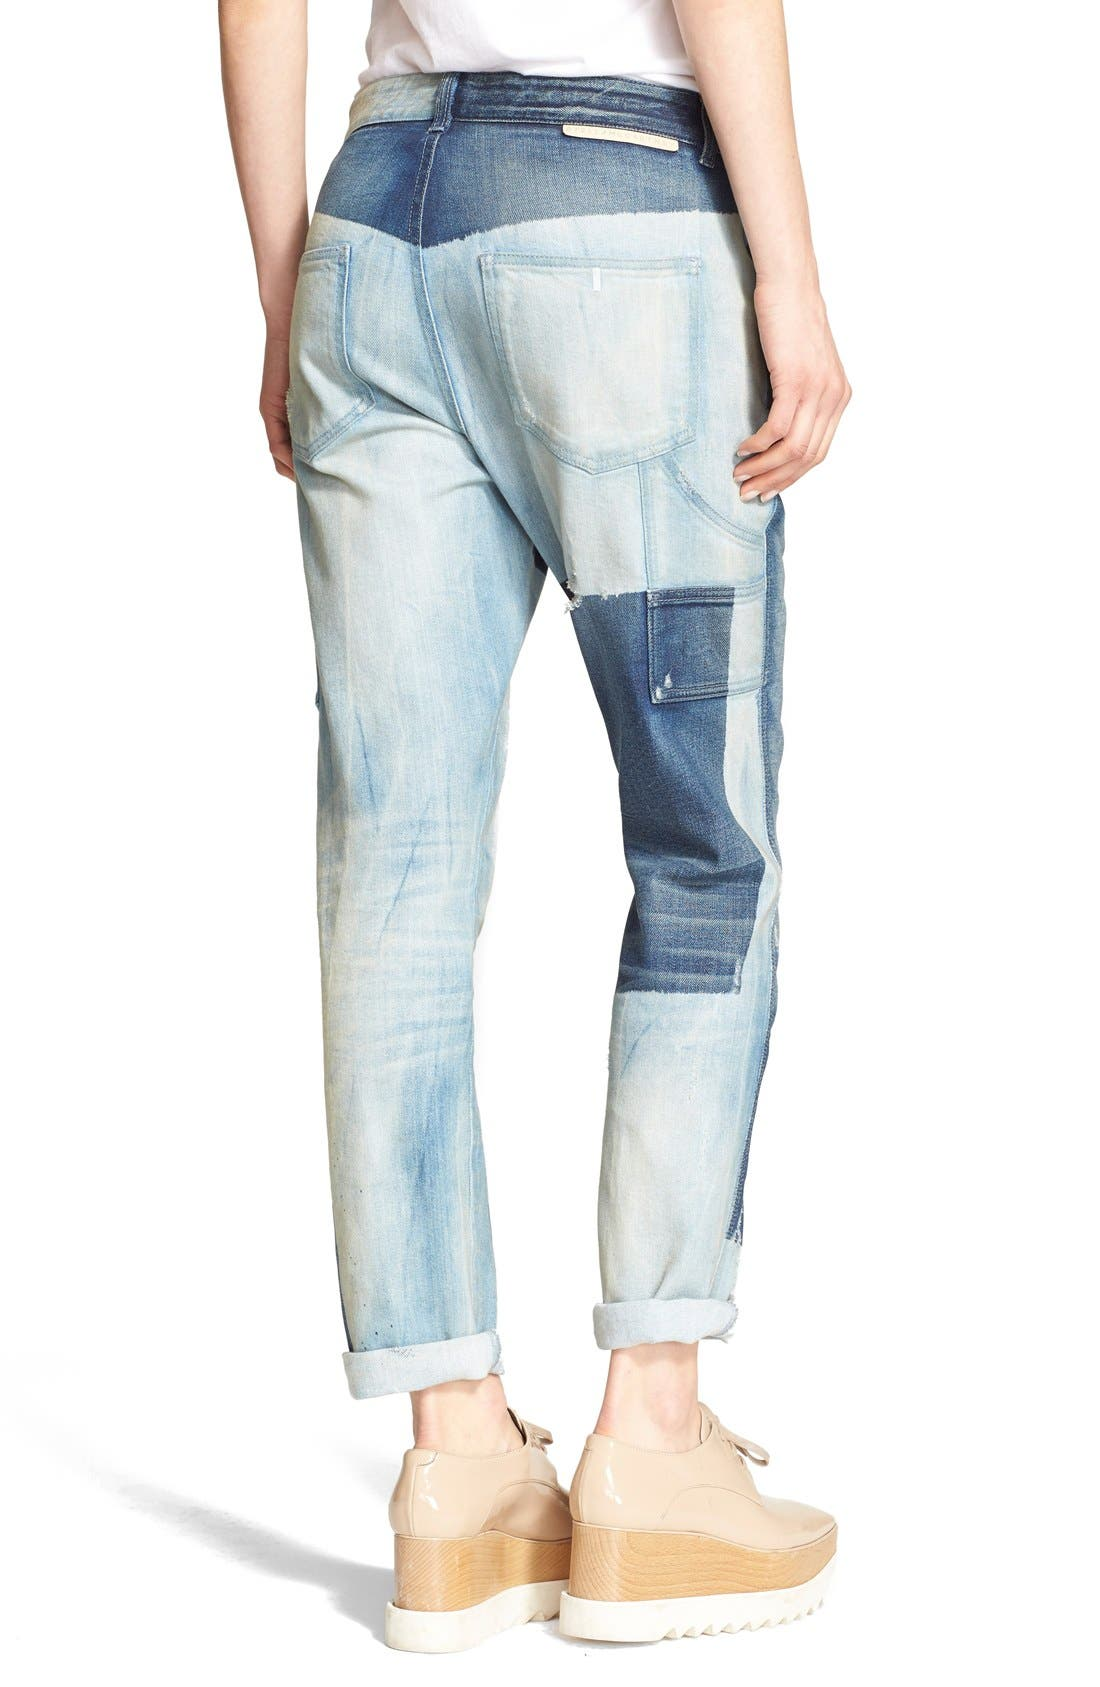 STELLA MCCARTNEY,                             'The Patchwork' Boyfriend Jeans,                             Alternate thumbnail 3, color,                             476